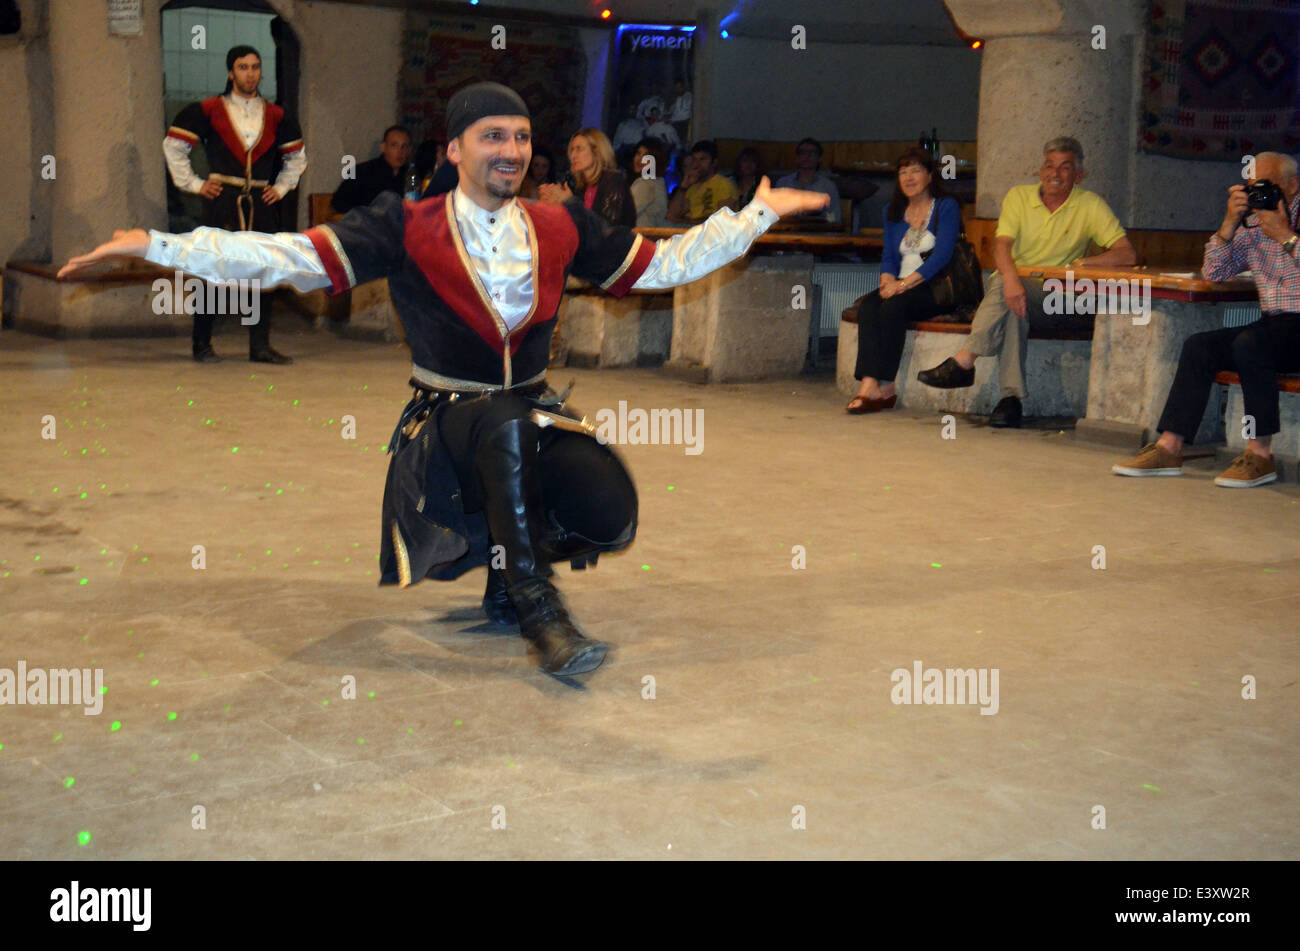 An evening of dancingand entertainment after visiting thefairy tale houses &churches of Cappadocia.They are - Stock Image